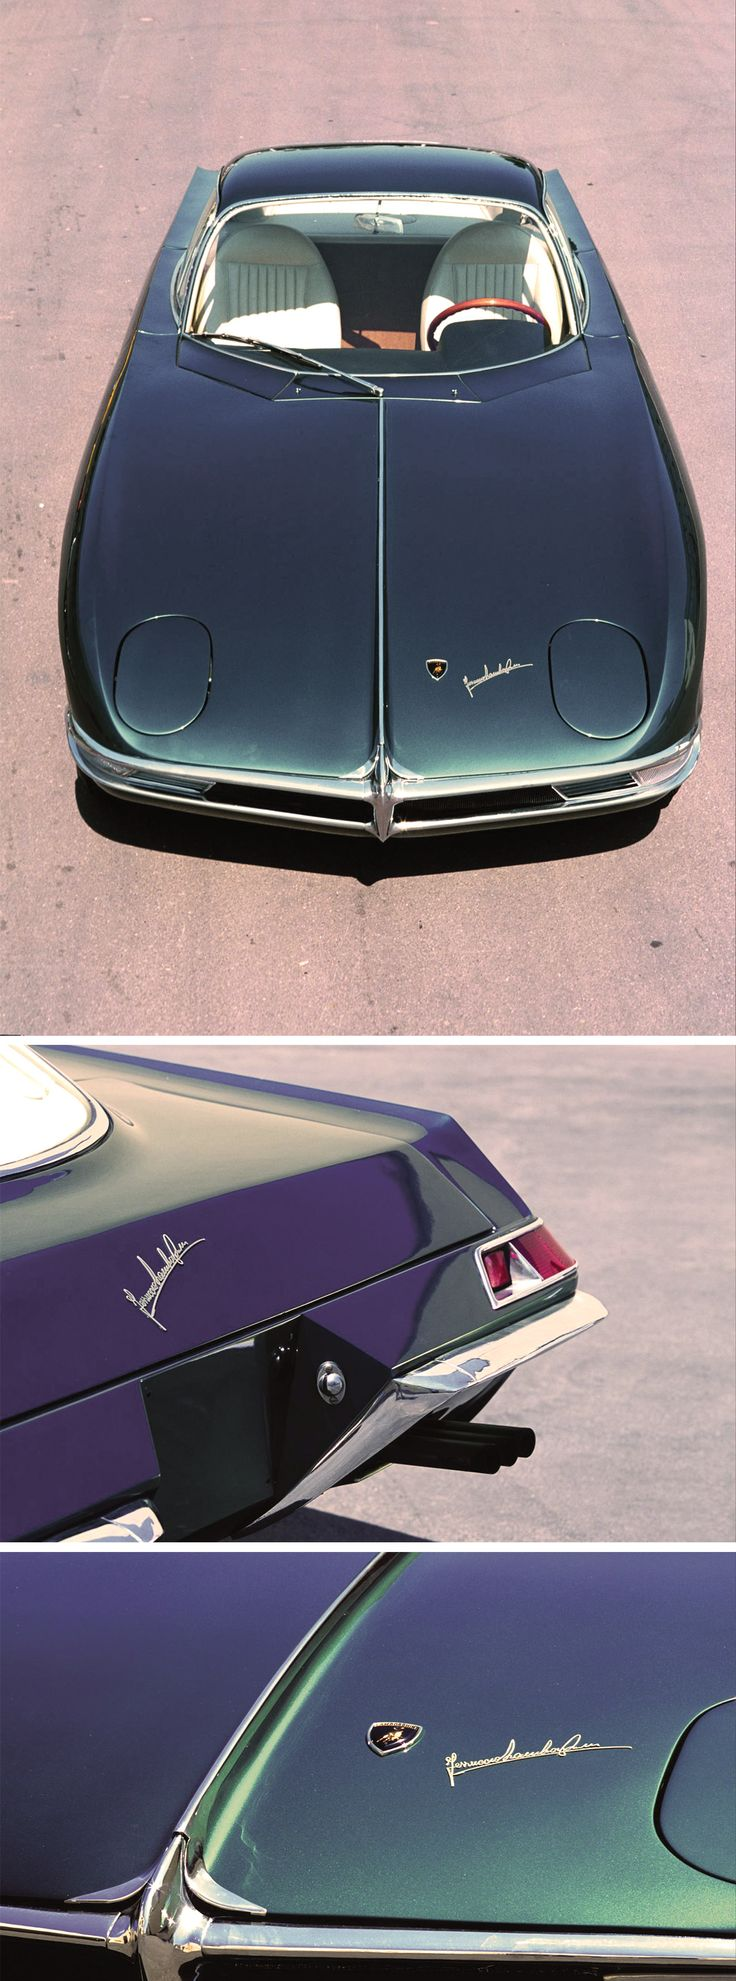 Lamborghini 350 GTV (1963) - Design by Scaglione, Ferruccio Lamborghini signature. The very first Lamborghini ever made. RWD 3.5 L. V12, 342 bhp, top speed 280 km/h. Only one unit in the world. Priceless, timeless, ancestor of a noble legacy.